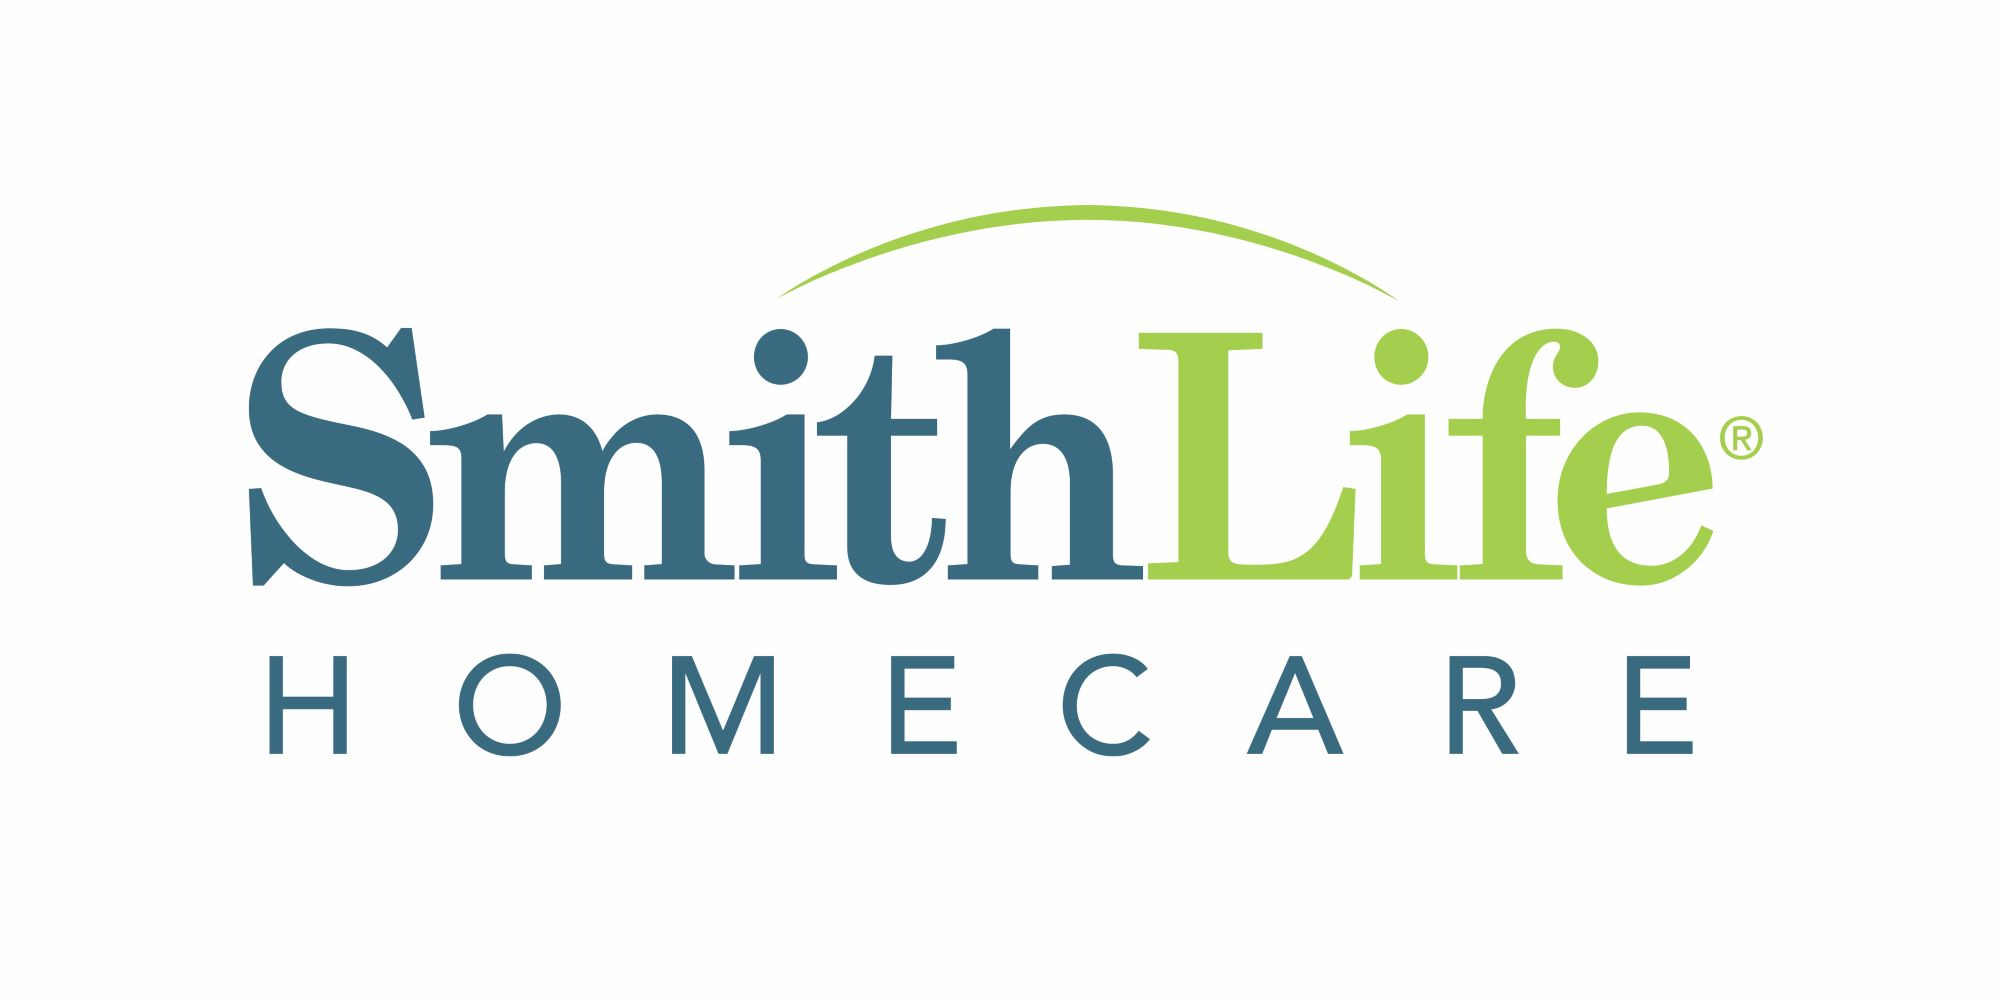 Smith Life HomeCare image 2